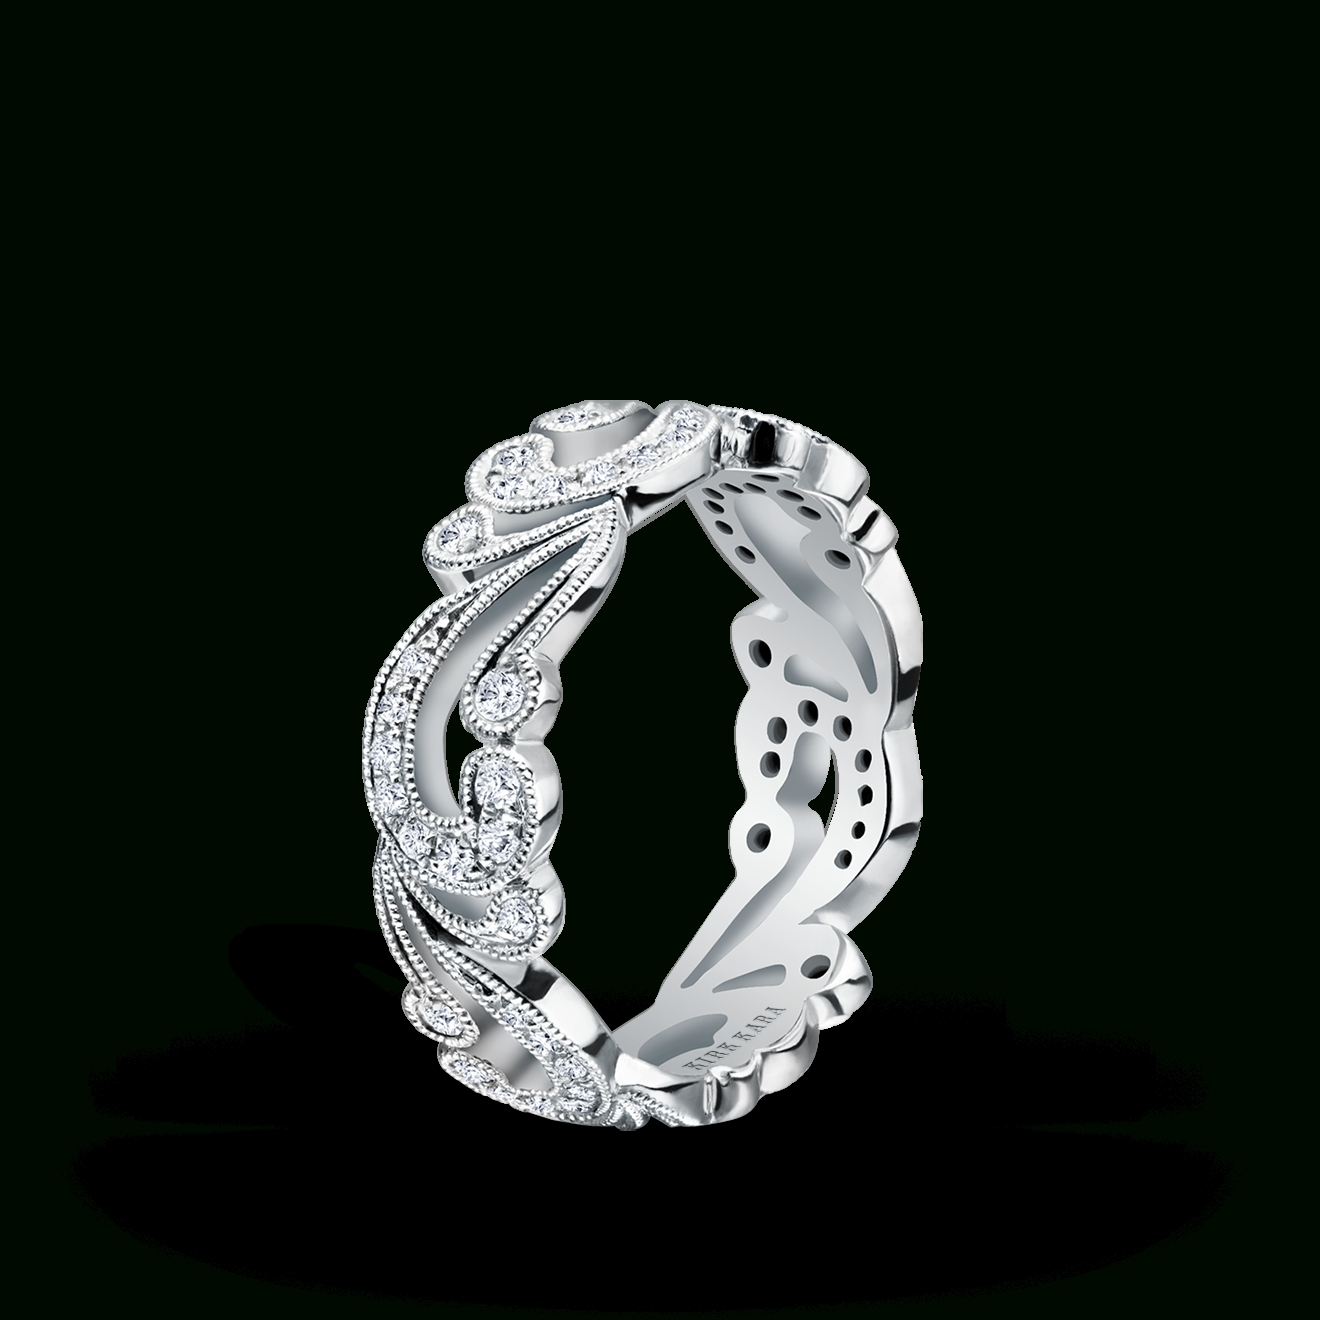 Designer Diamond Wedding & Anniversary Bands For Women | Kirk Kara Intended For Current Engraved Anniversary Rings (View 6 of 25)